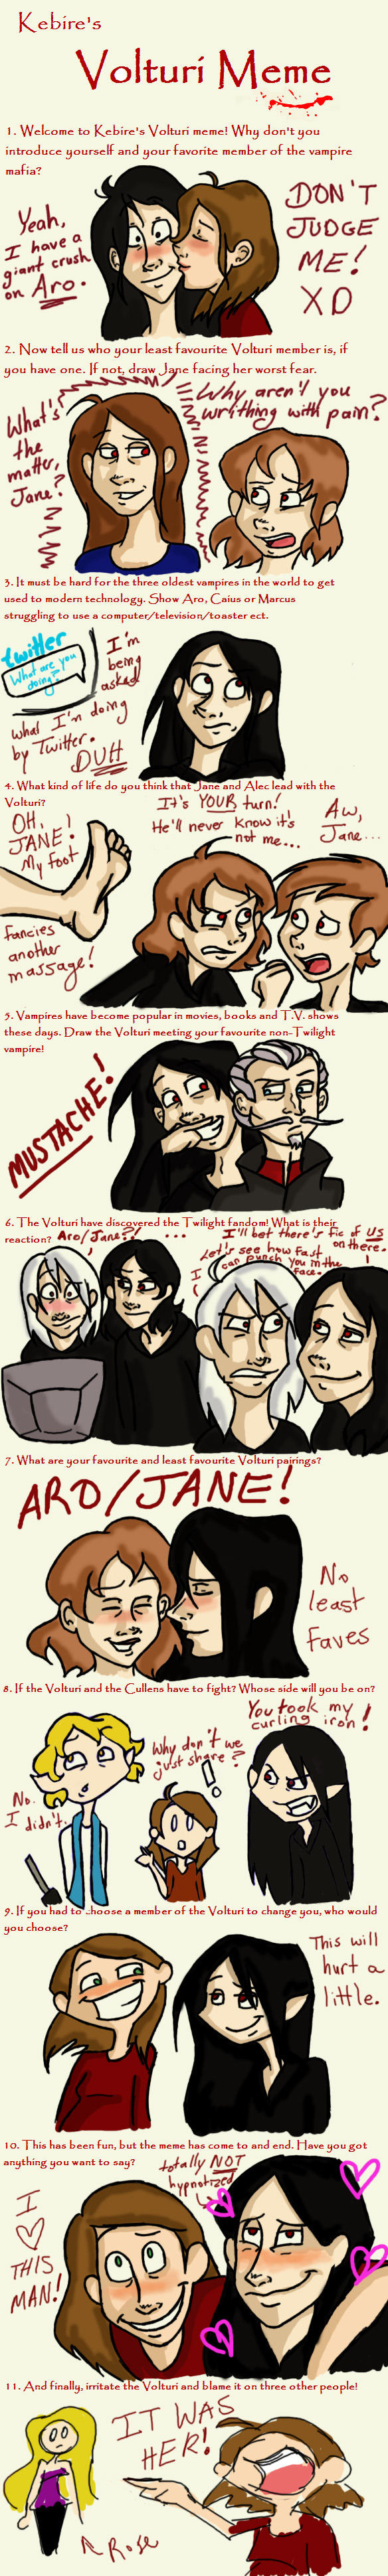 Volturi Meme By Sunni Sideup On Deviantart